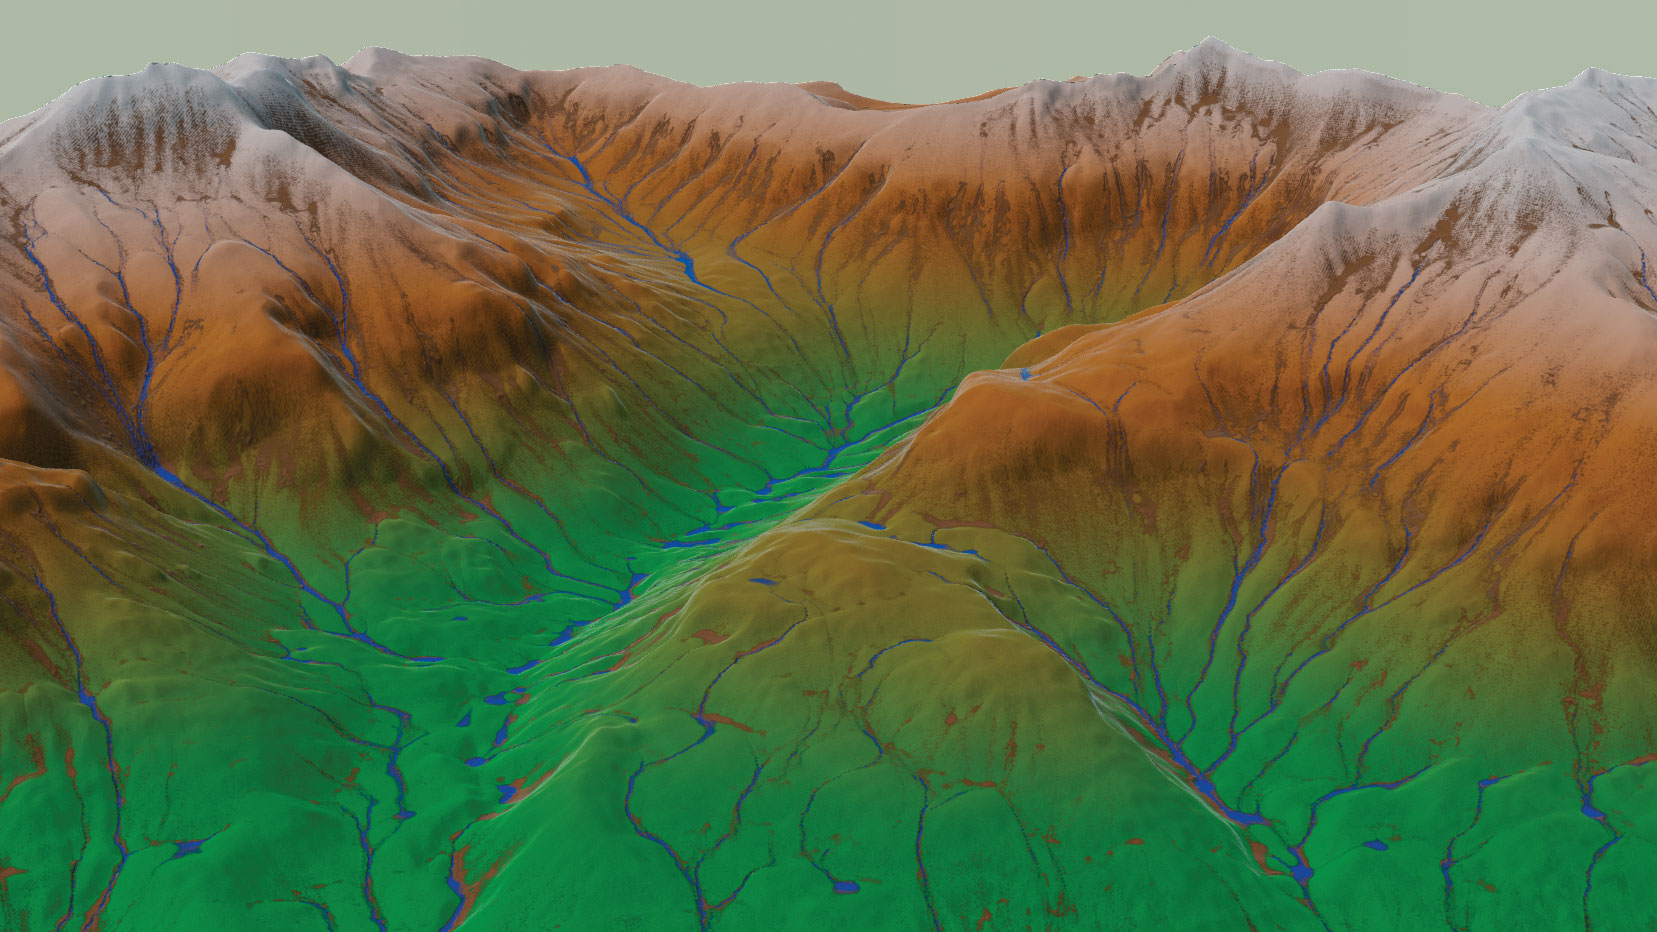 Build terrain in Houdini 17 | Creative Bloq